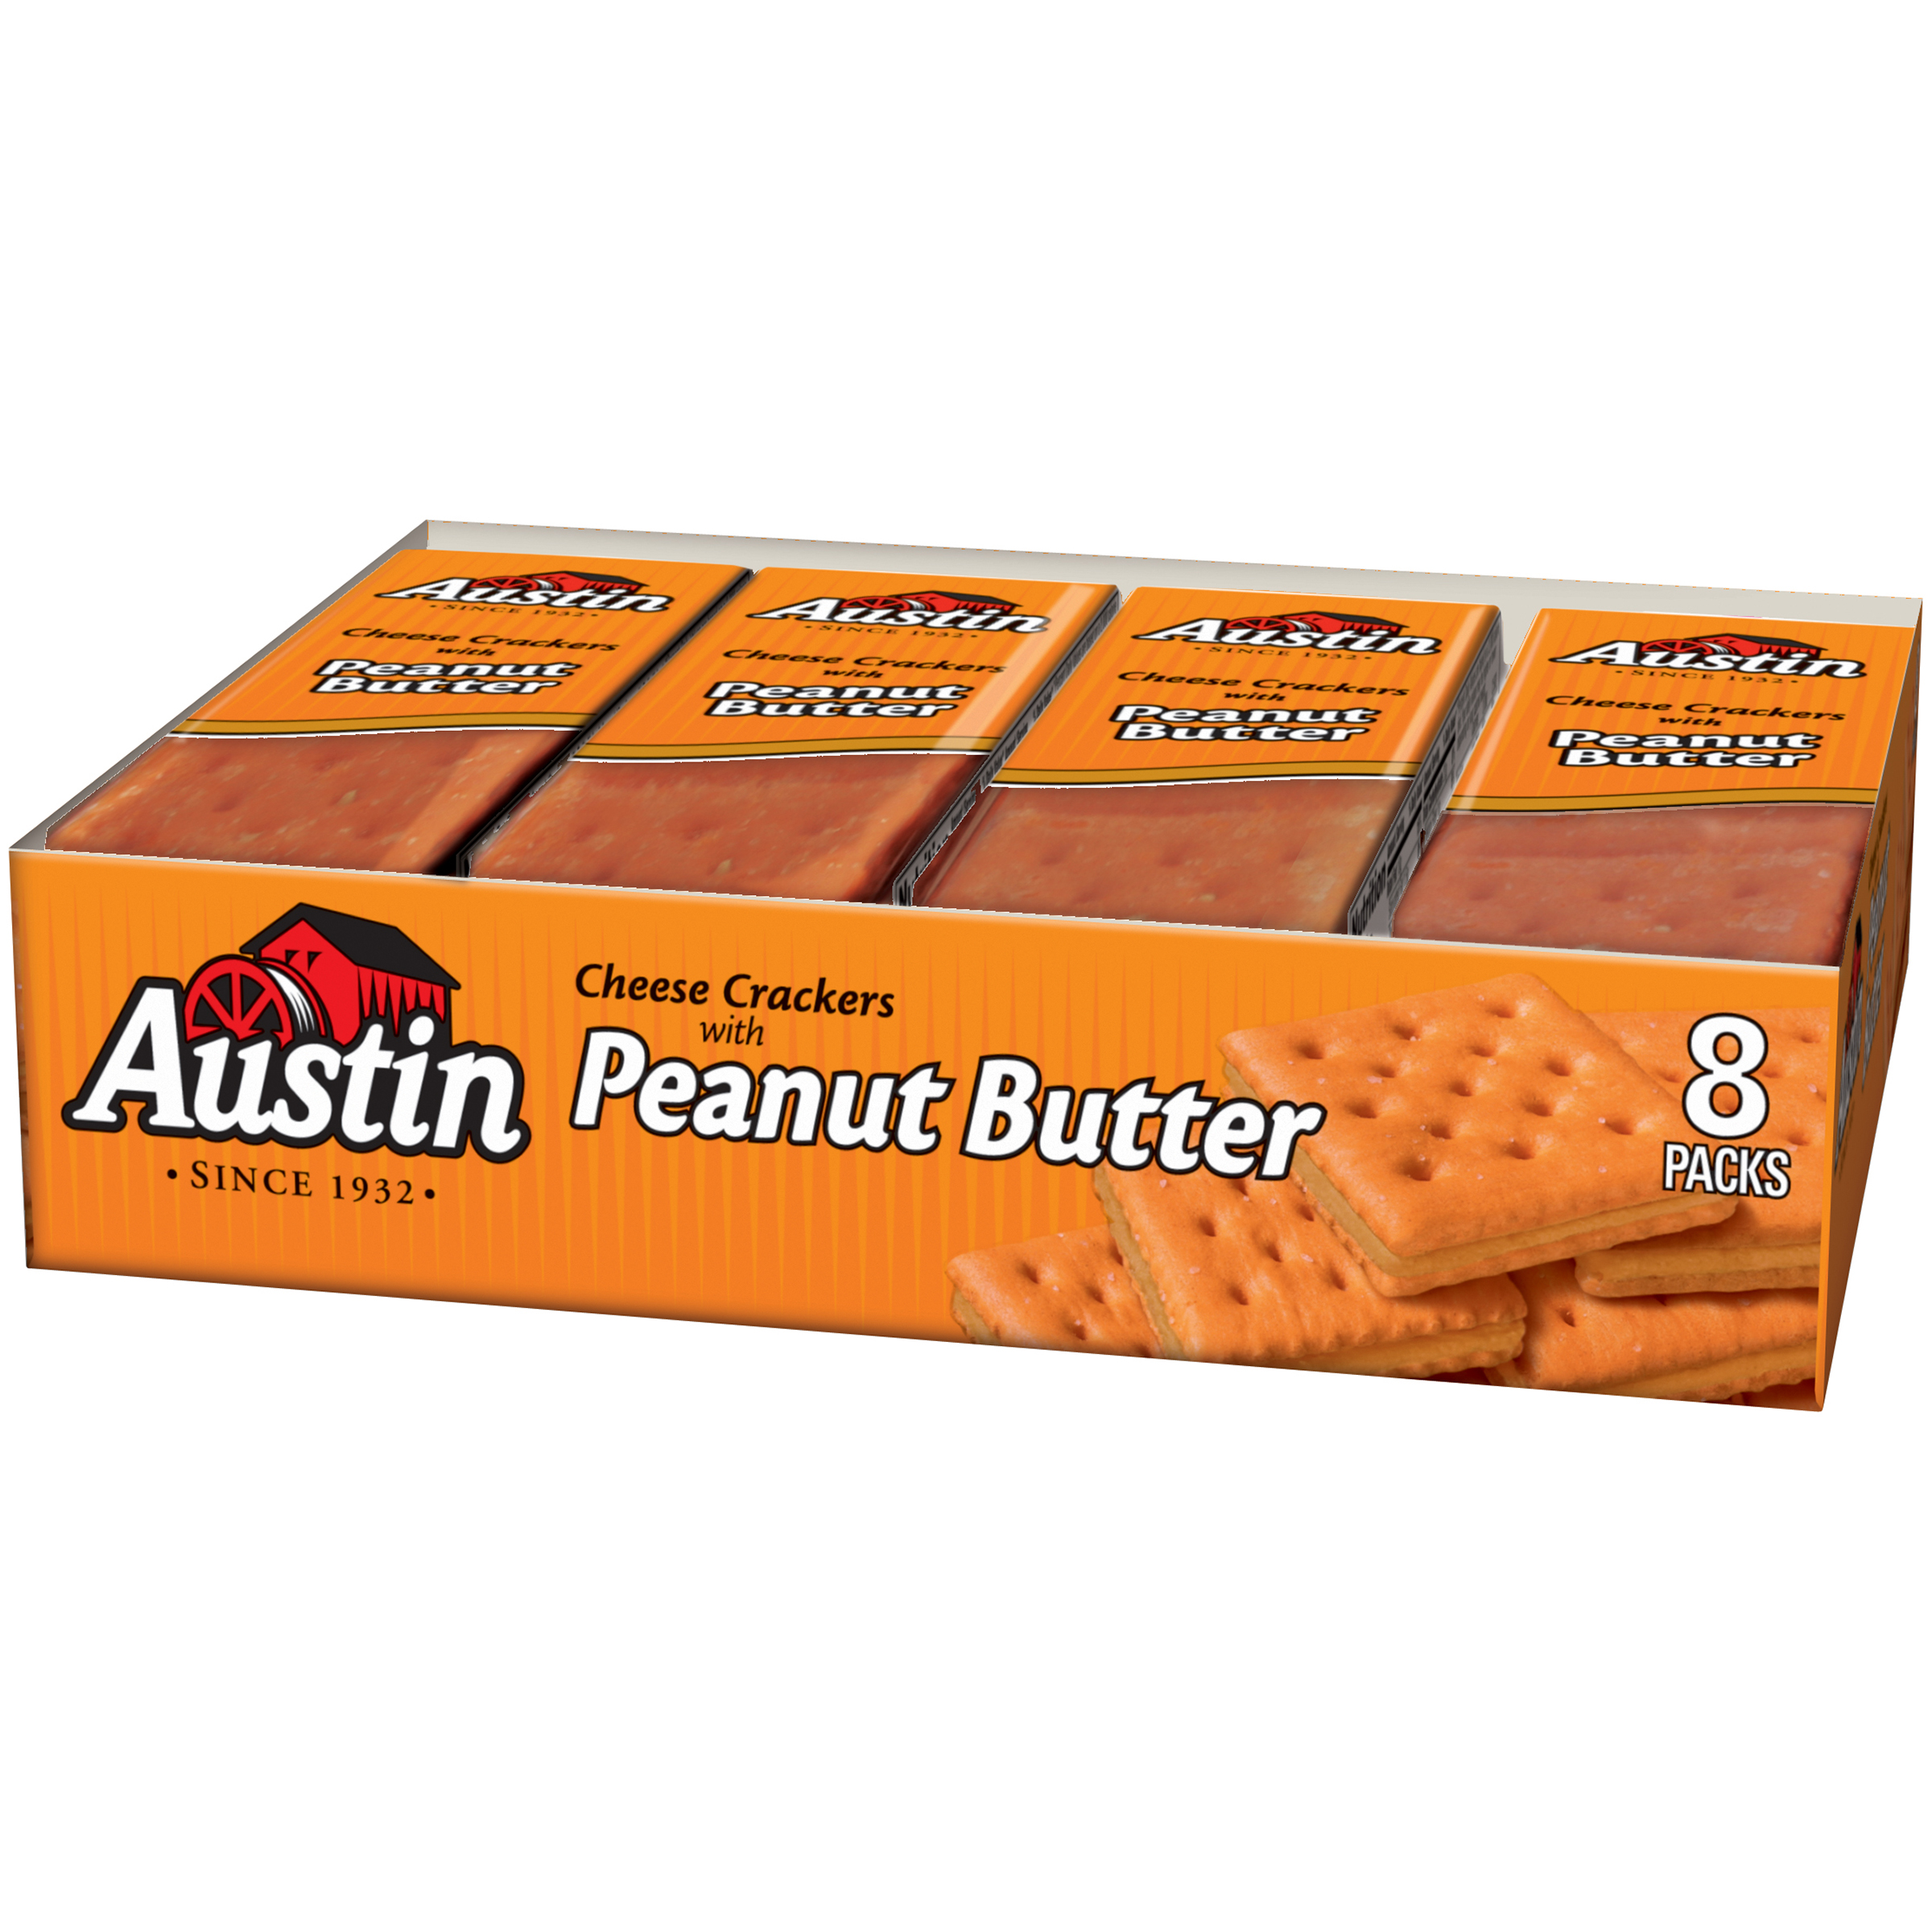 Austin�� Cheese Crackers with Peanut Butter 8-1.38 oz. Packages